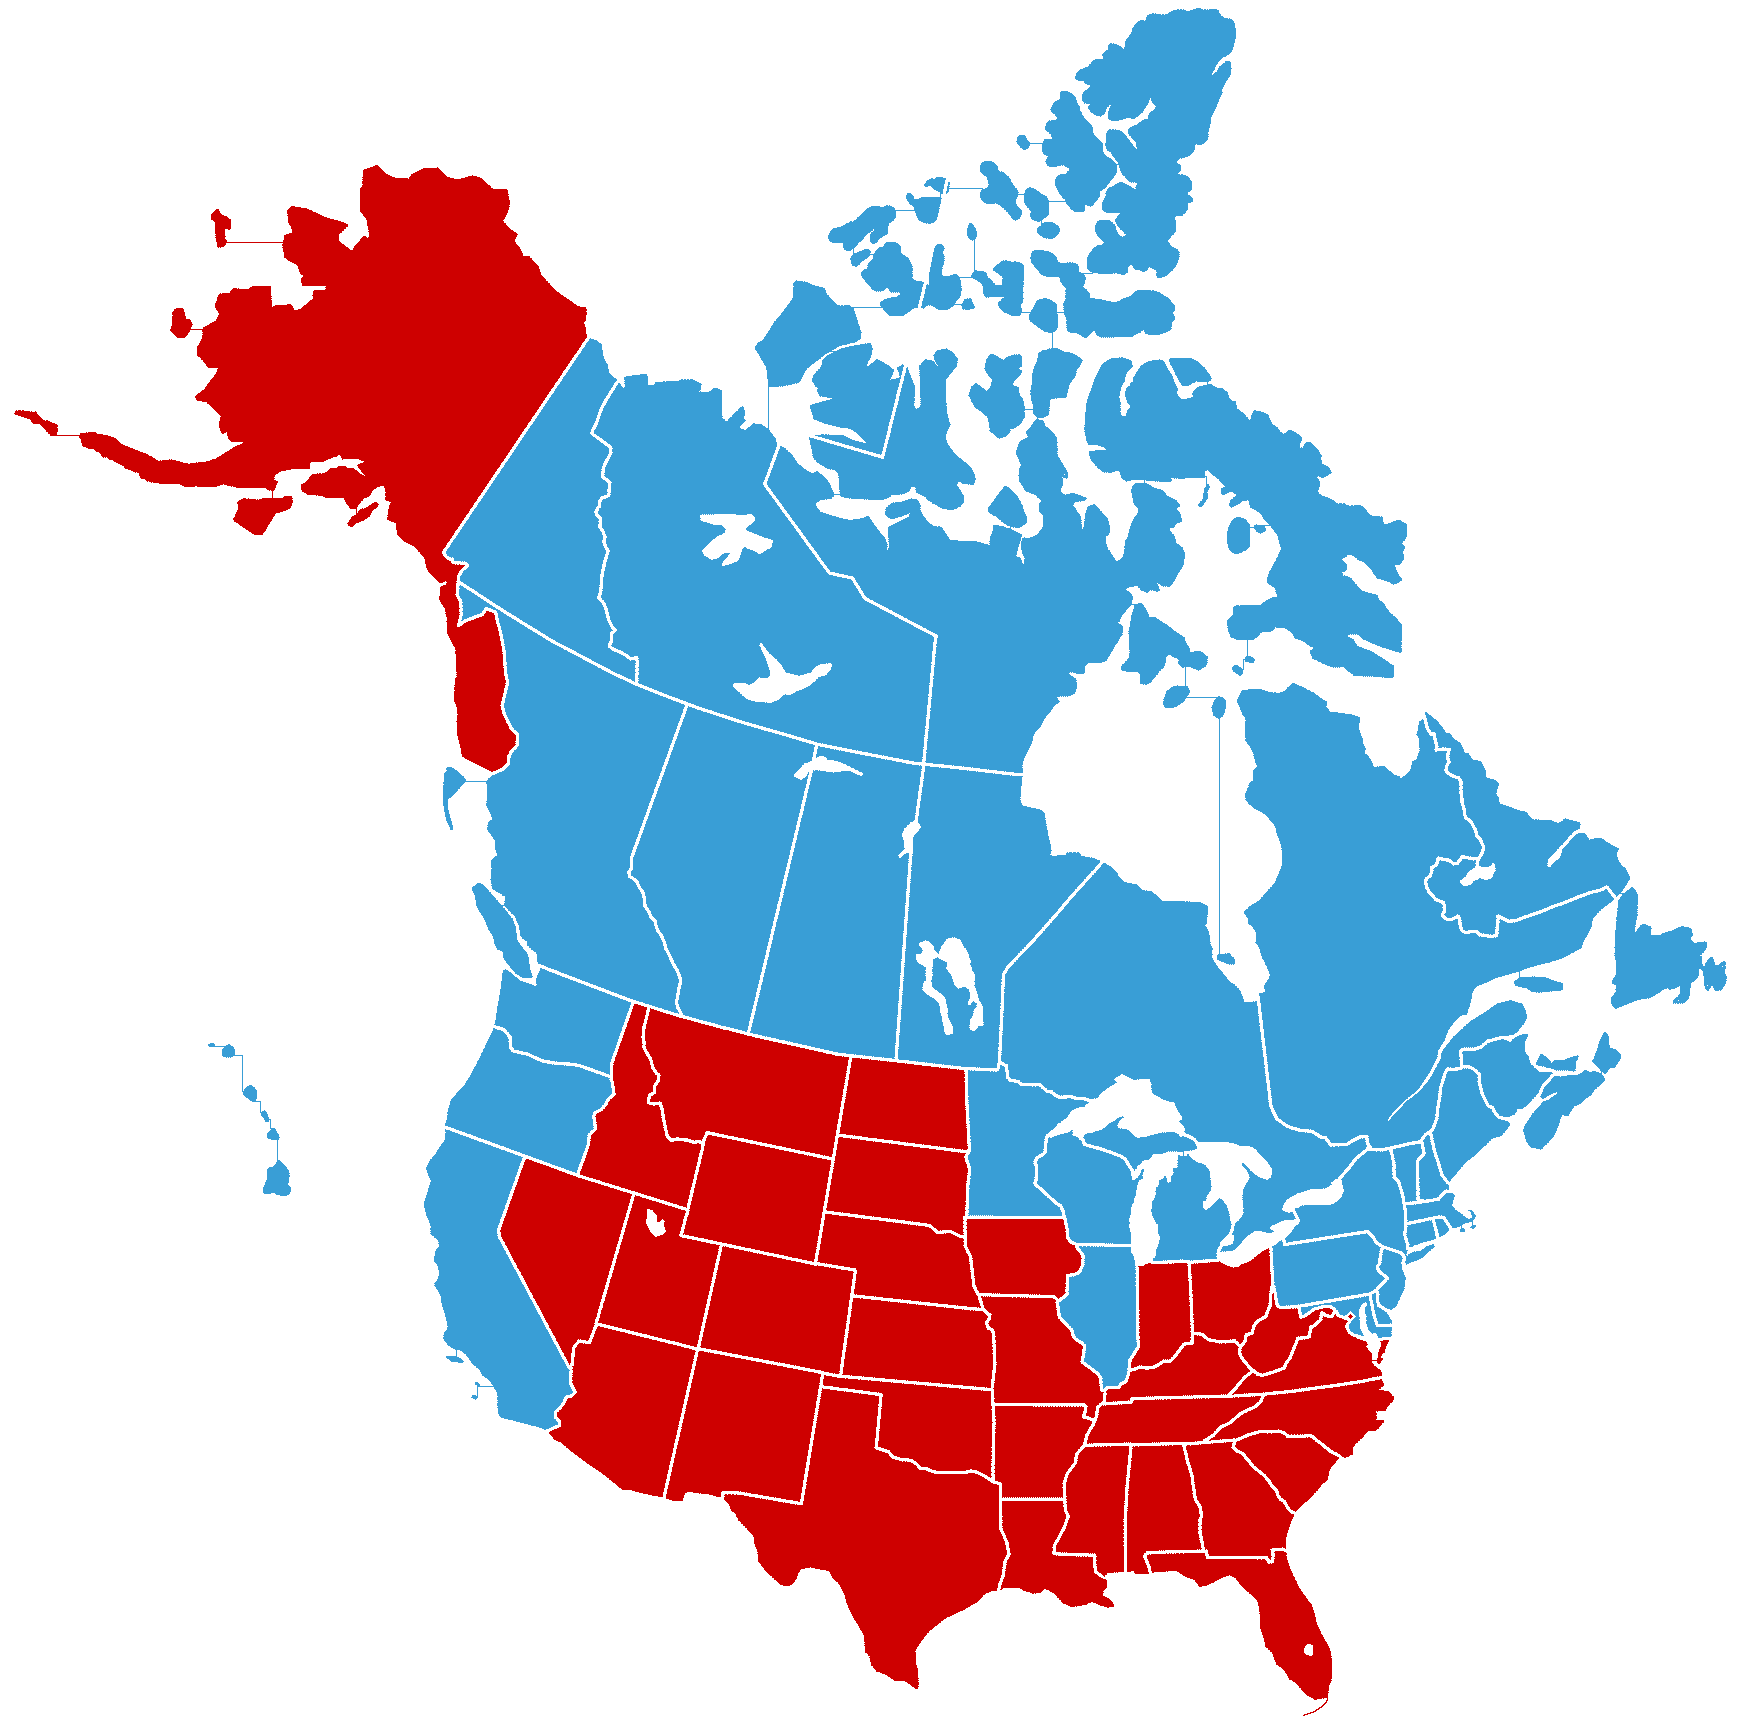 Vector Map Of North America With US States And Canadian Provinces